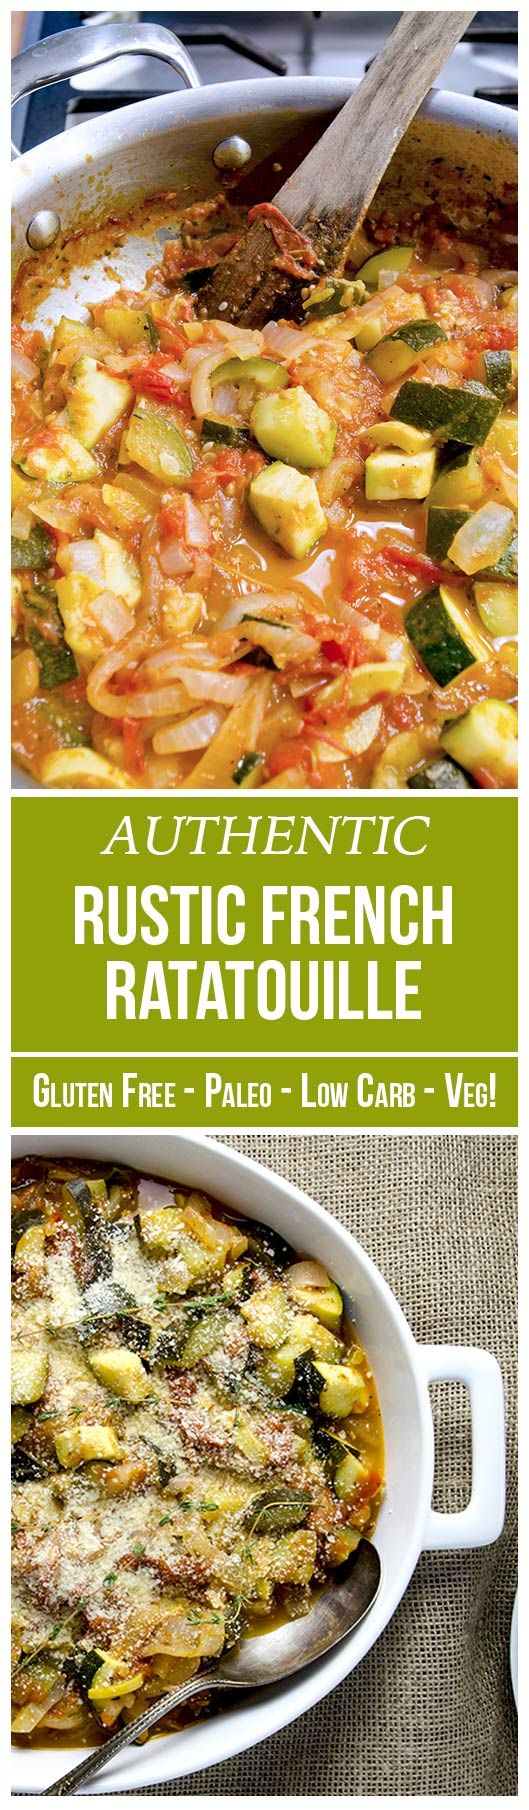 Enjoy this authentic French Ratatouille dish with your favorite meals any day of the week. This easy recipe is packed full of flavor with minimal preparation.